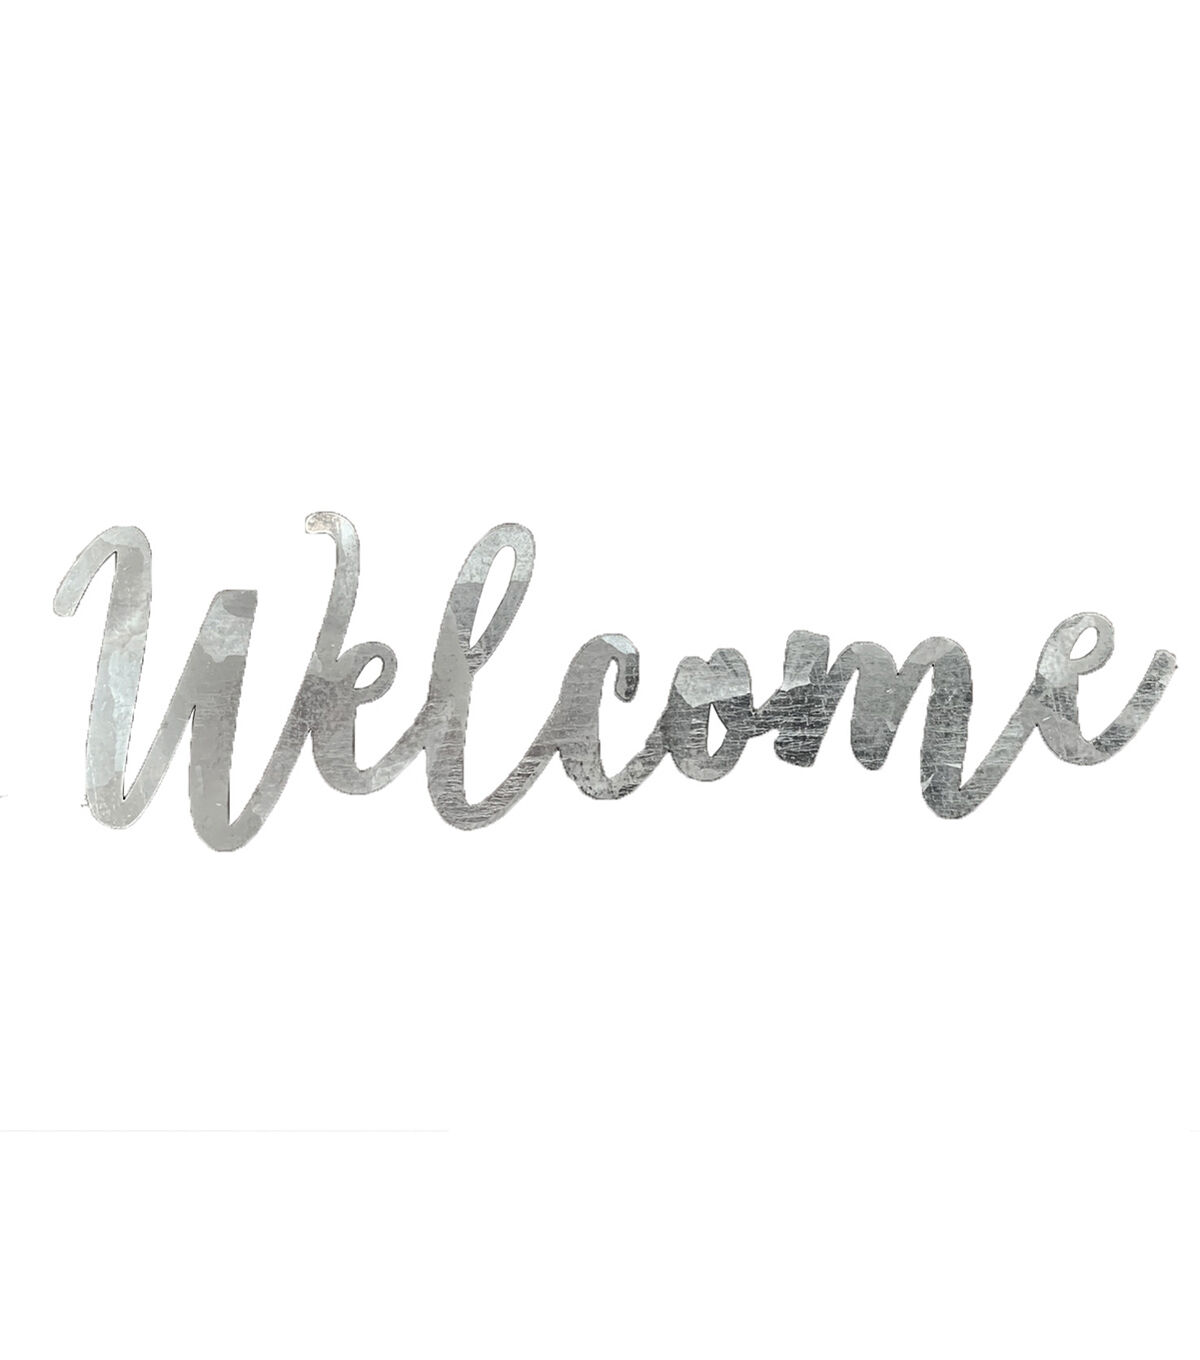 galvanized welcome sign from Joann stores